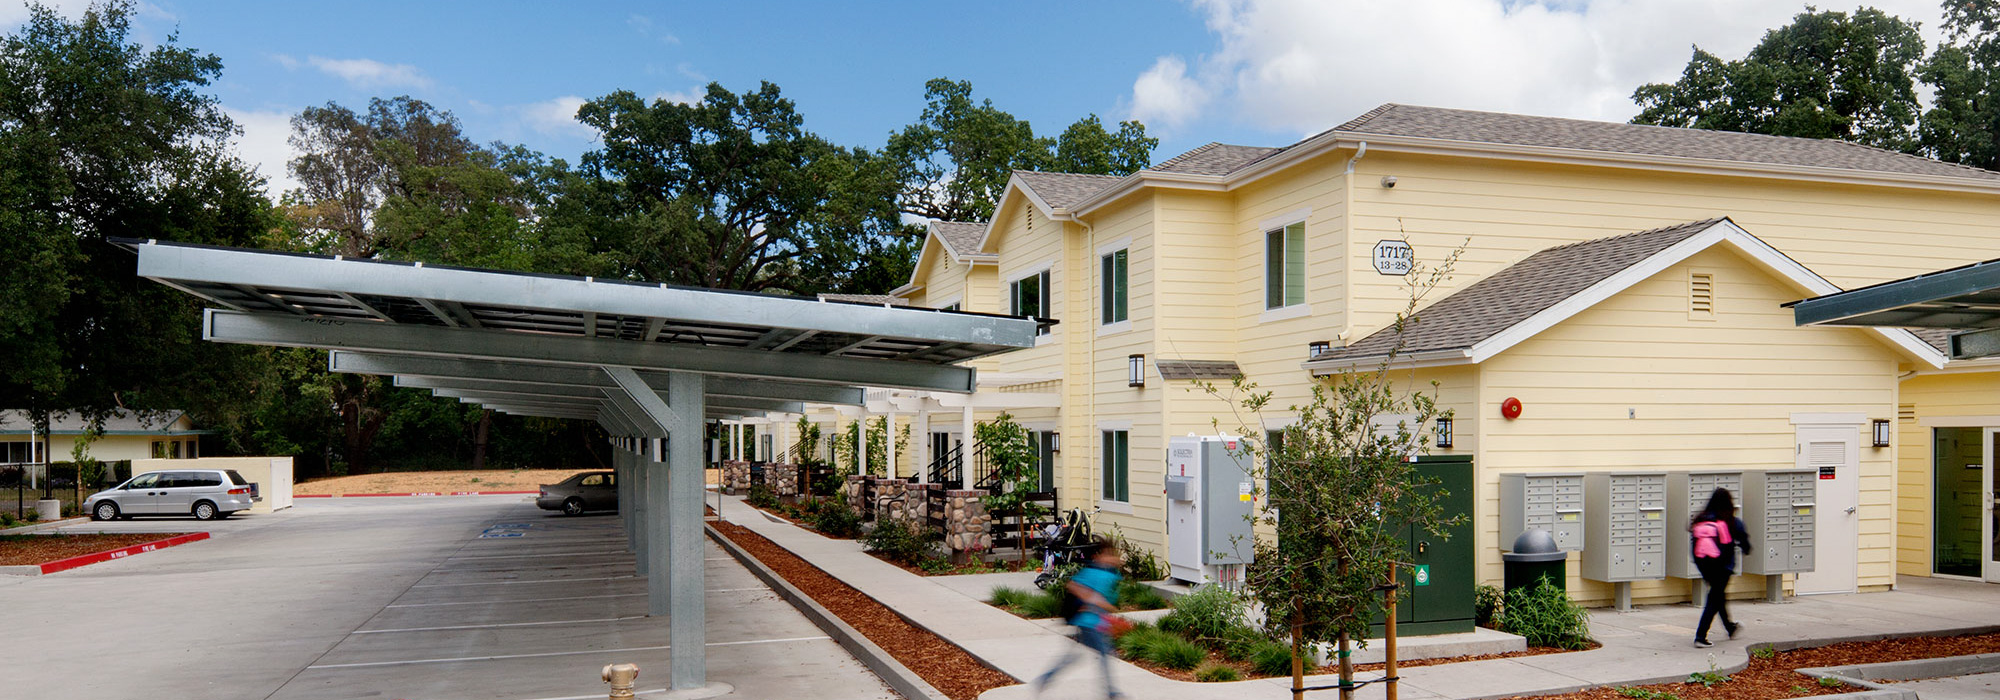 53rd Annual Golden Nugget Net-Zero Design Winner!